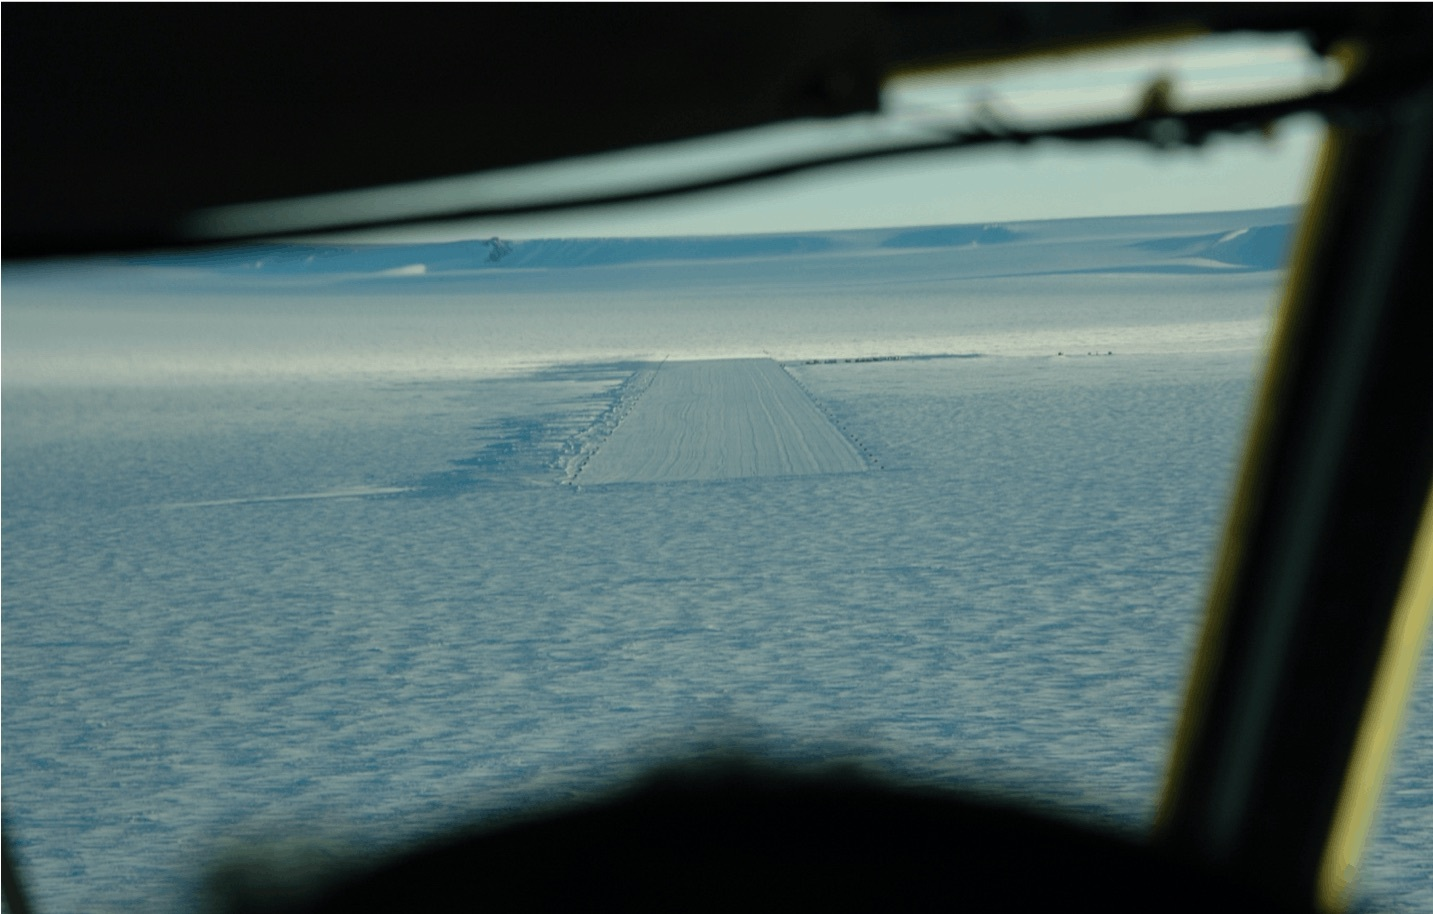 Looking out at the Troll Airfield from the flight deck of an aircraft on approach to the runway.